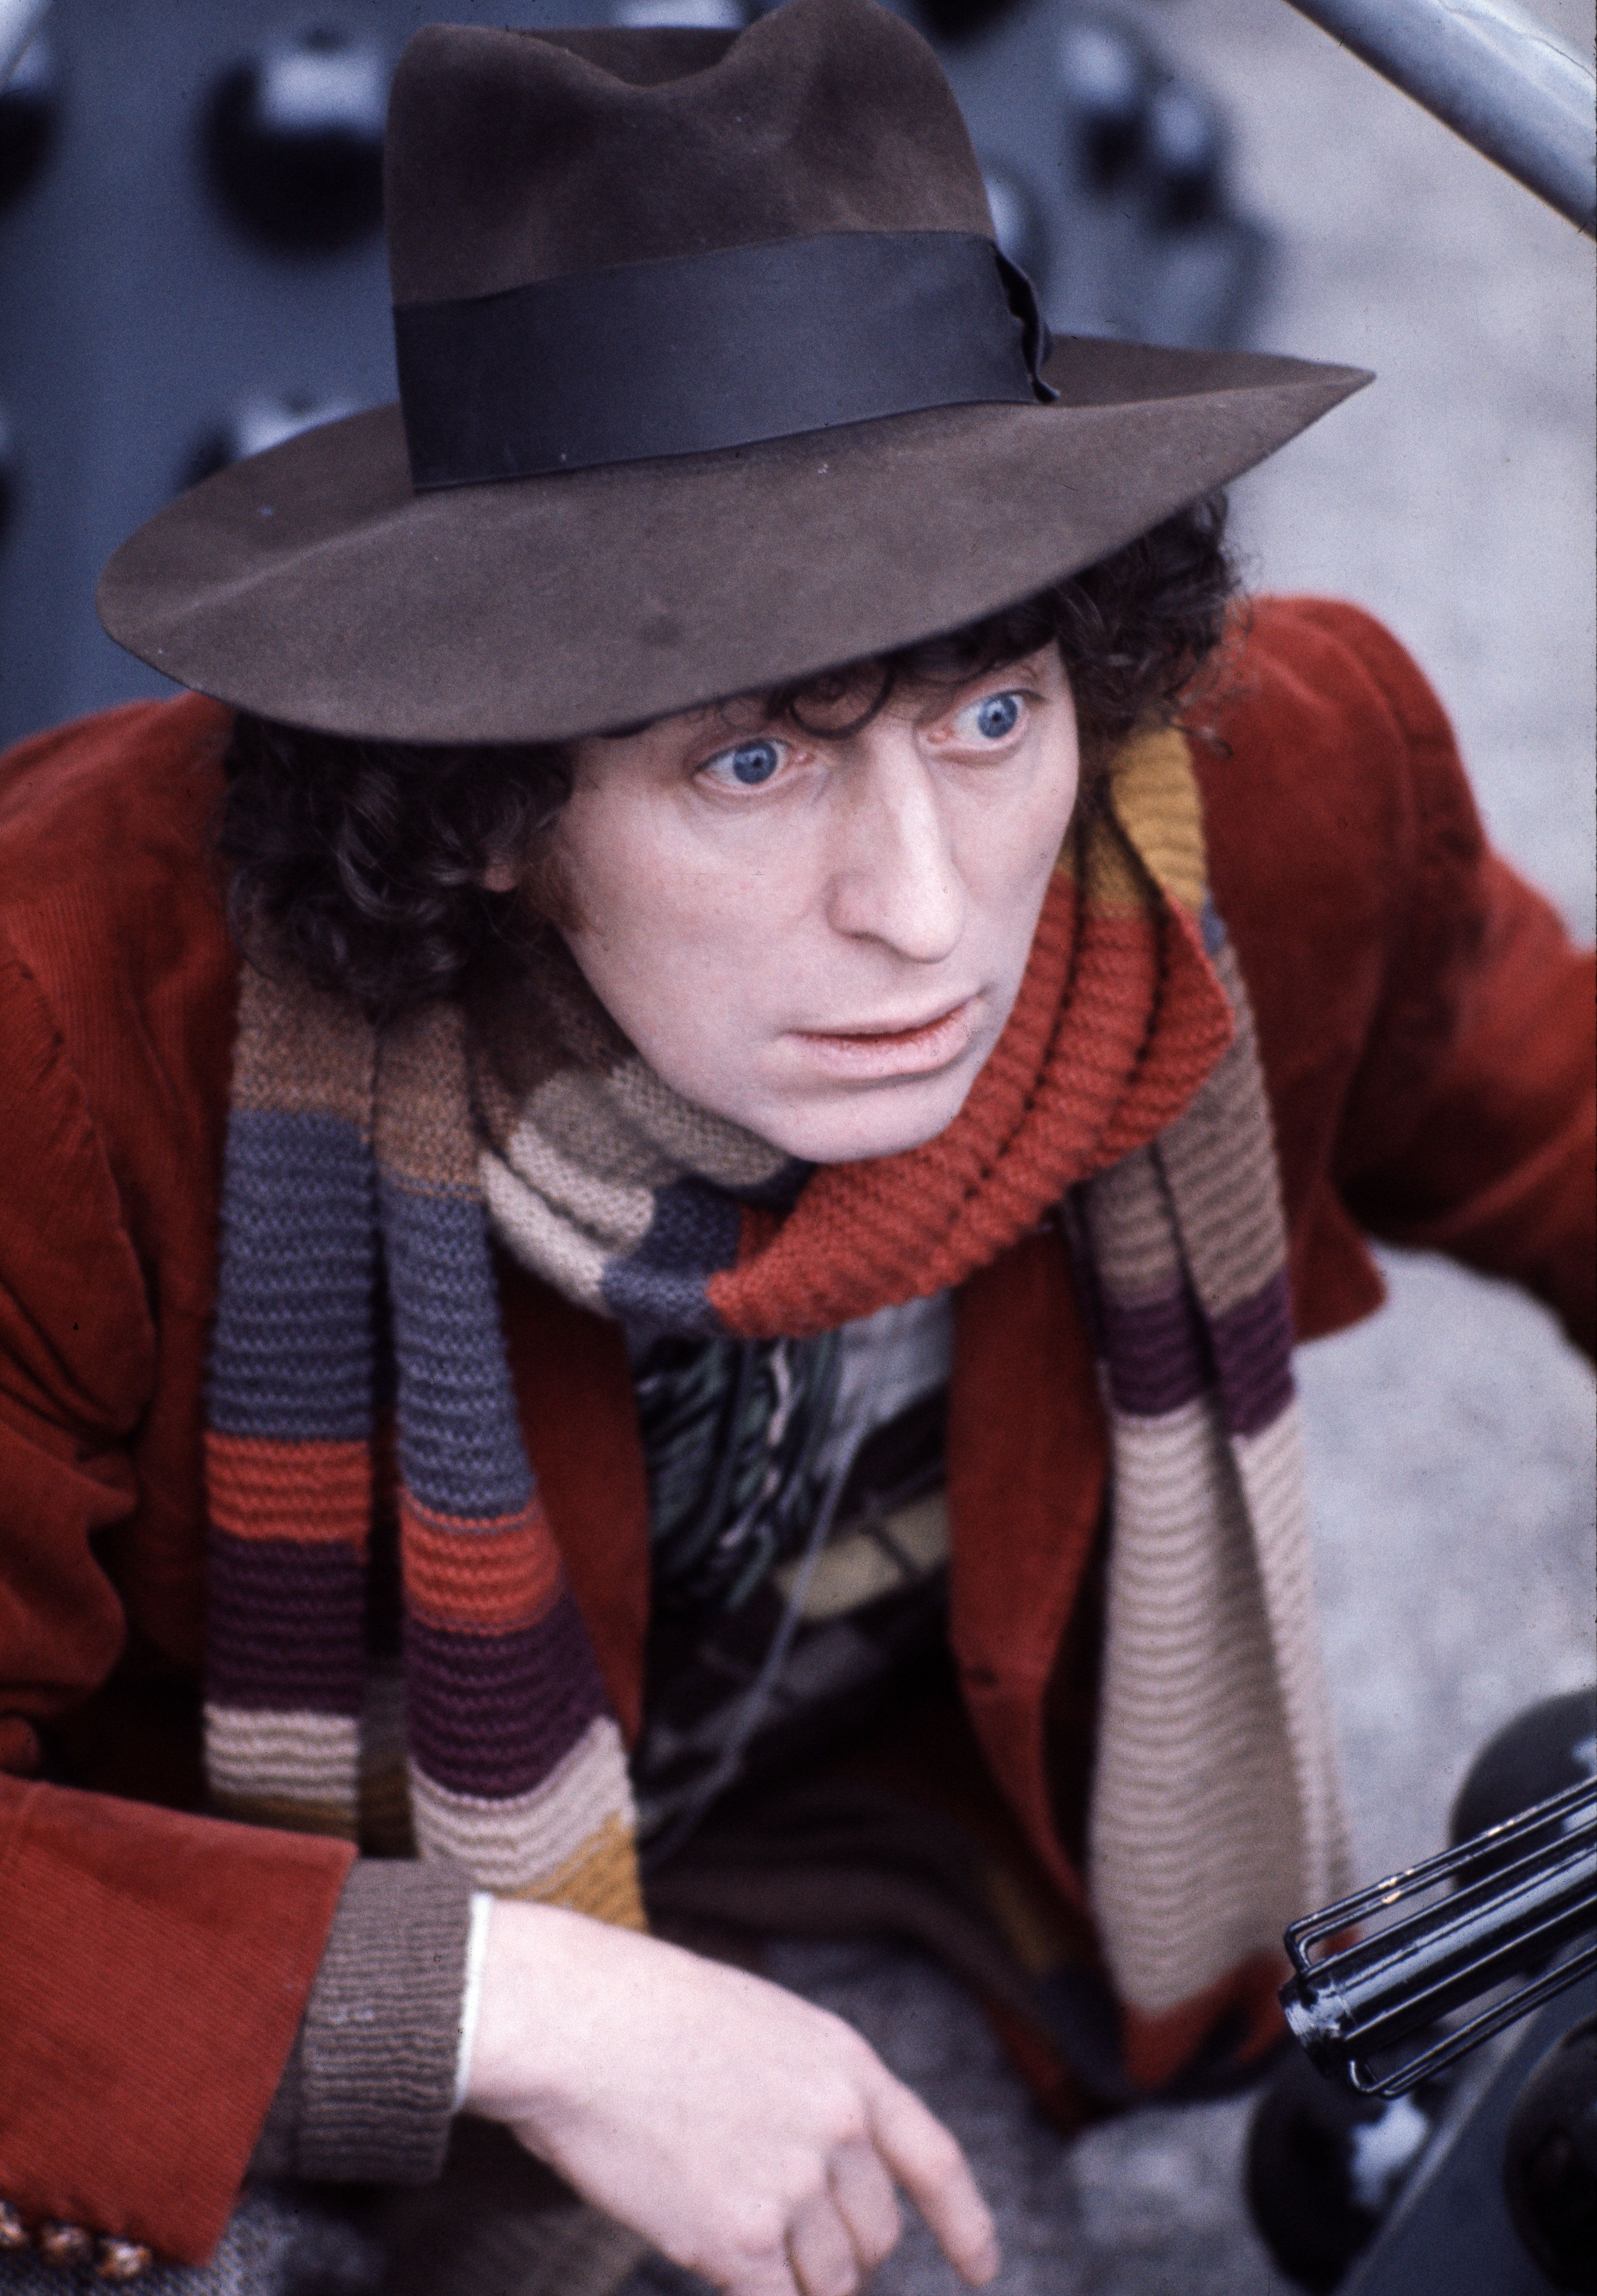 British actor Tom Baker playing Doctor Who in 1974.